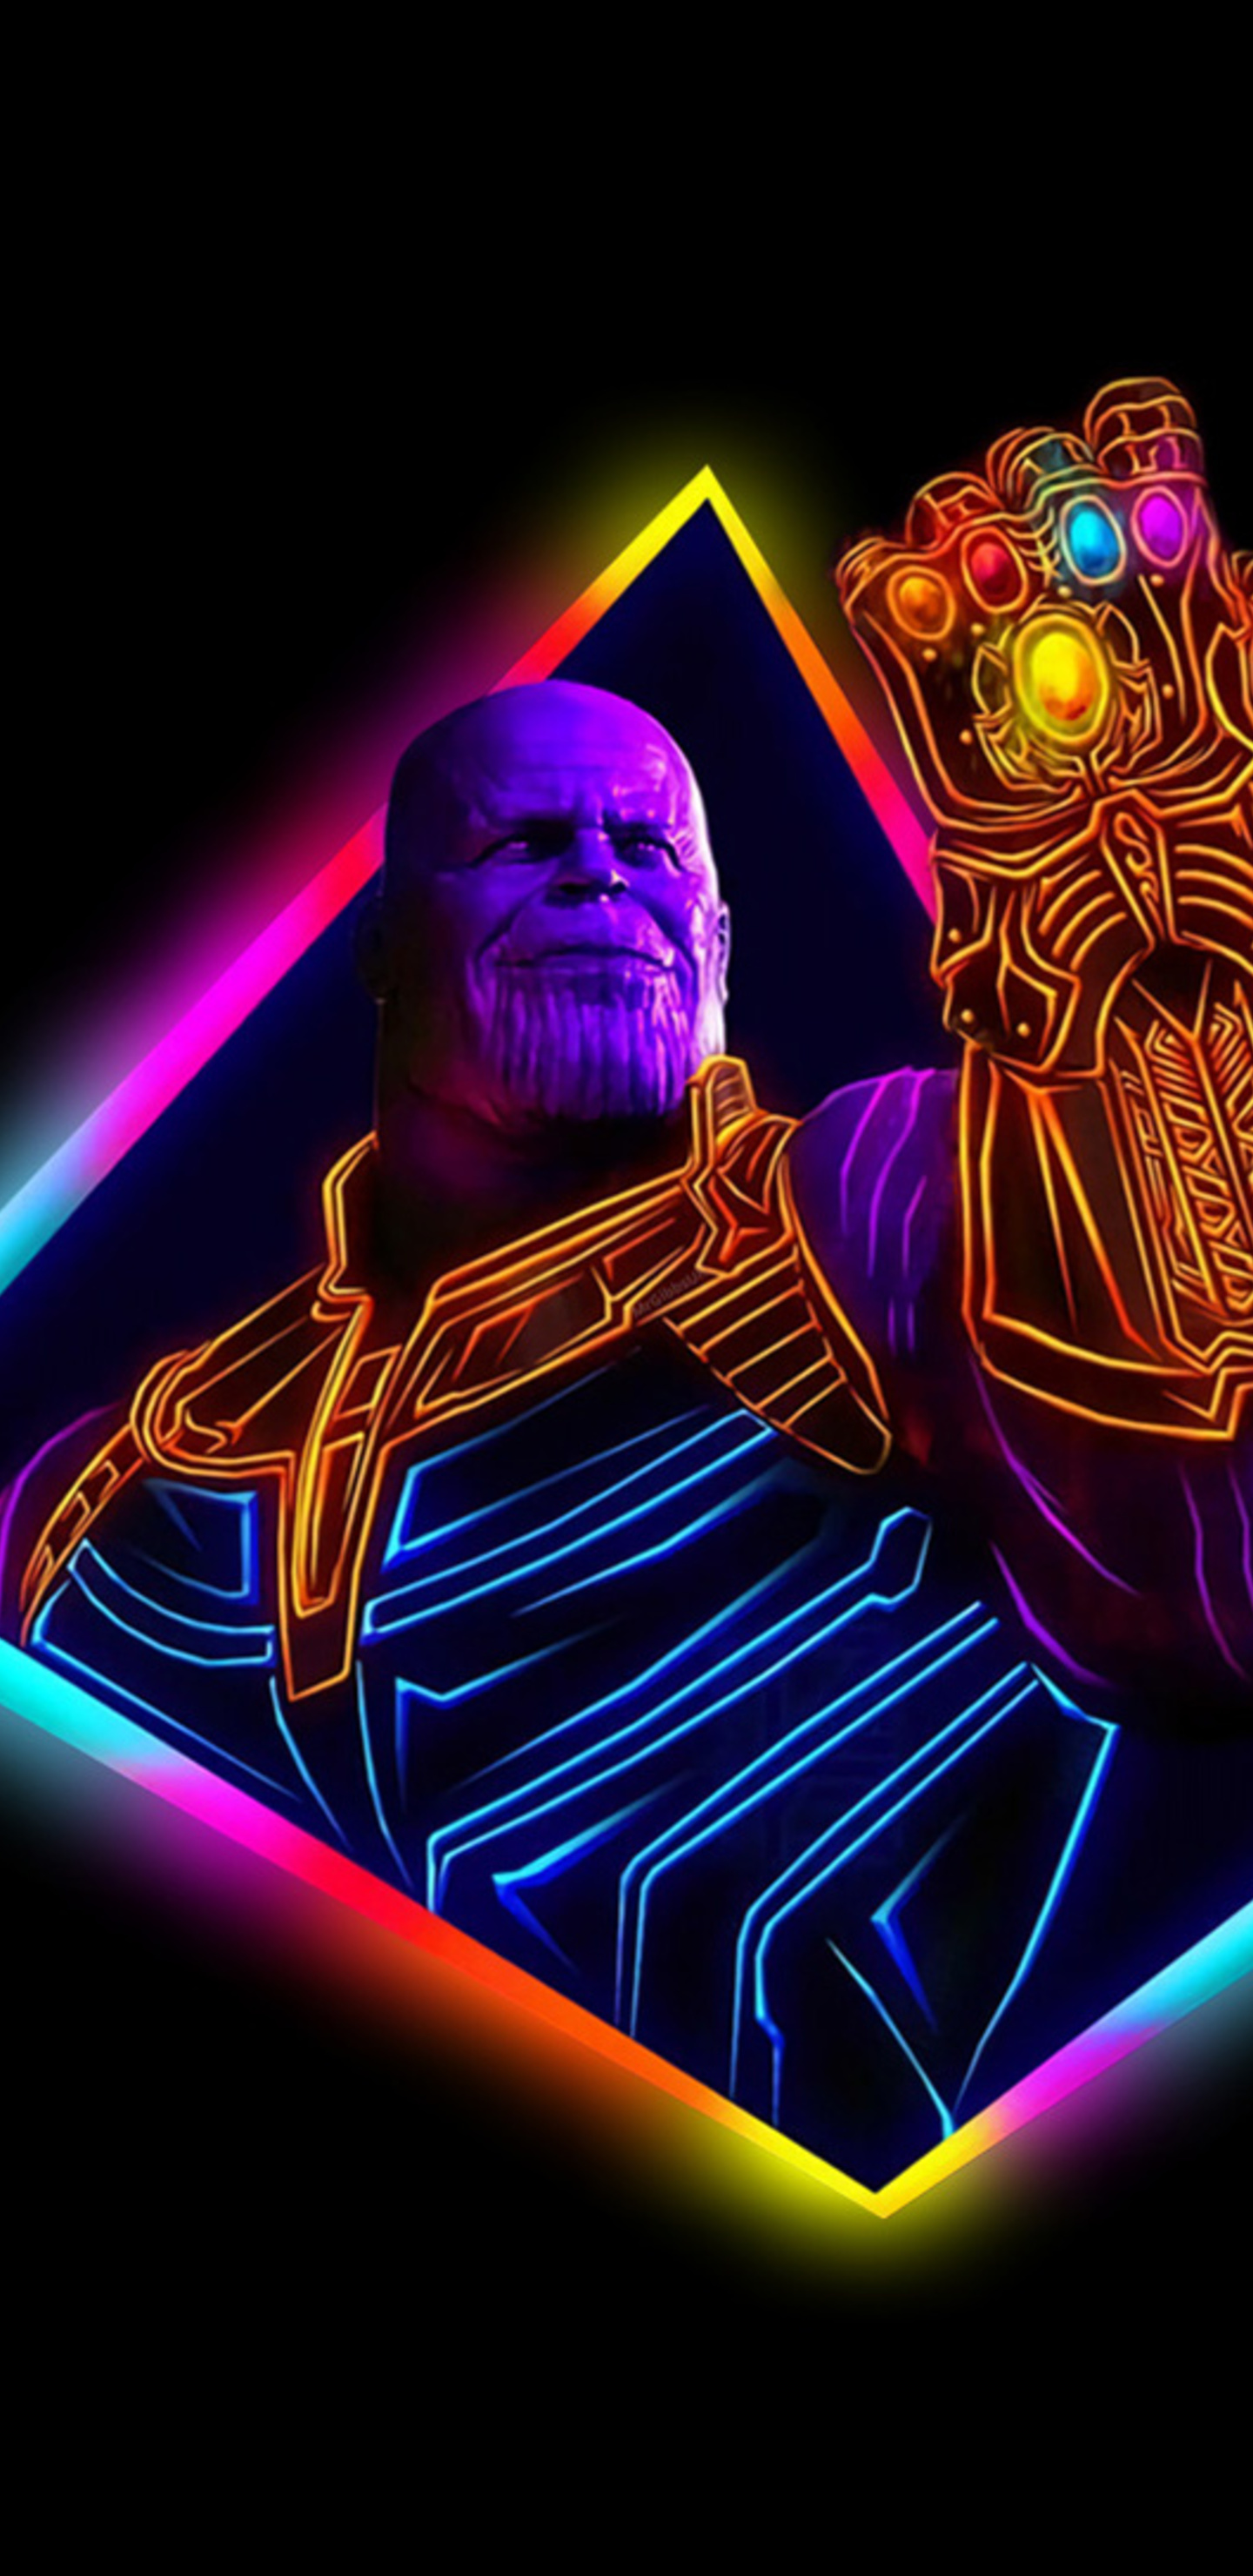 1440x2960 Thanos Avengers Infinity War 80s Style Artwork Samsung